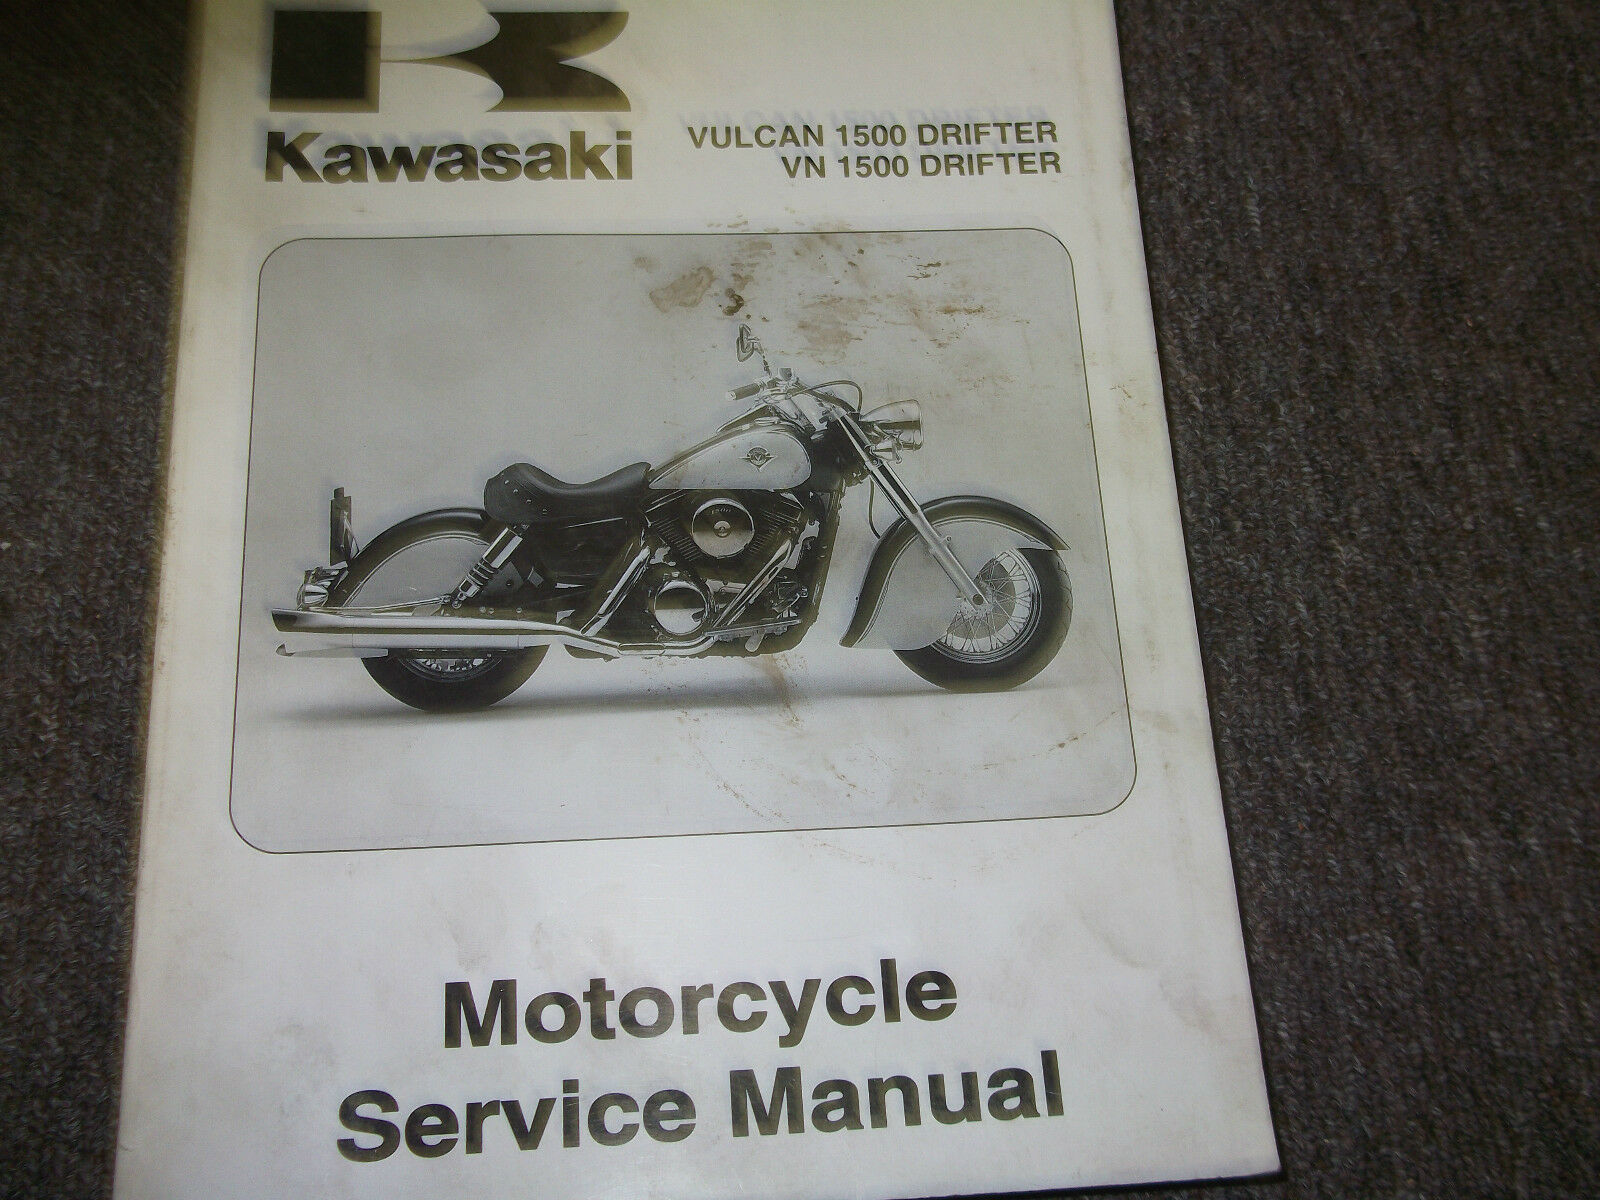 2002 Kawasaki Vulcan 1500 Drifter Vn1500 Service Repair Shop Manual 2000 Wiring Schematic Oem X 1 Of 5only Available